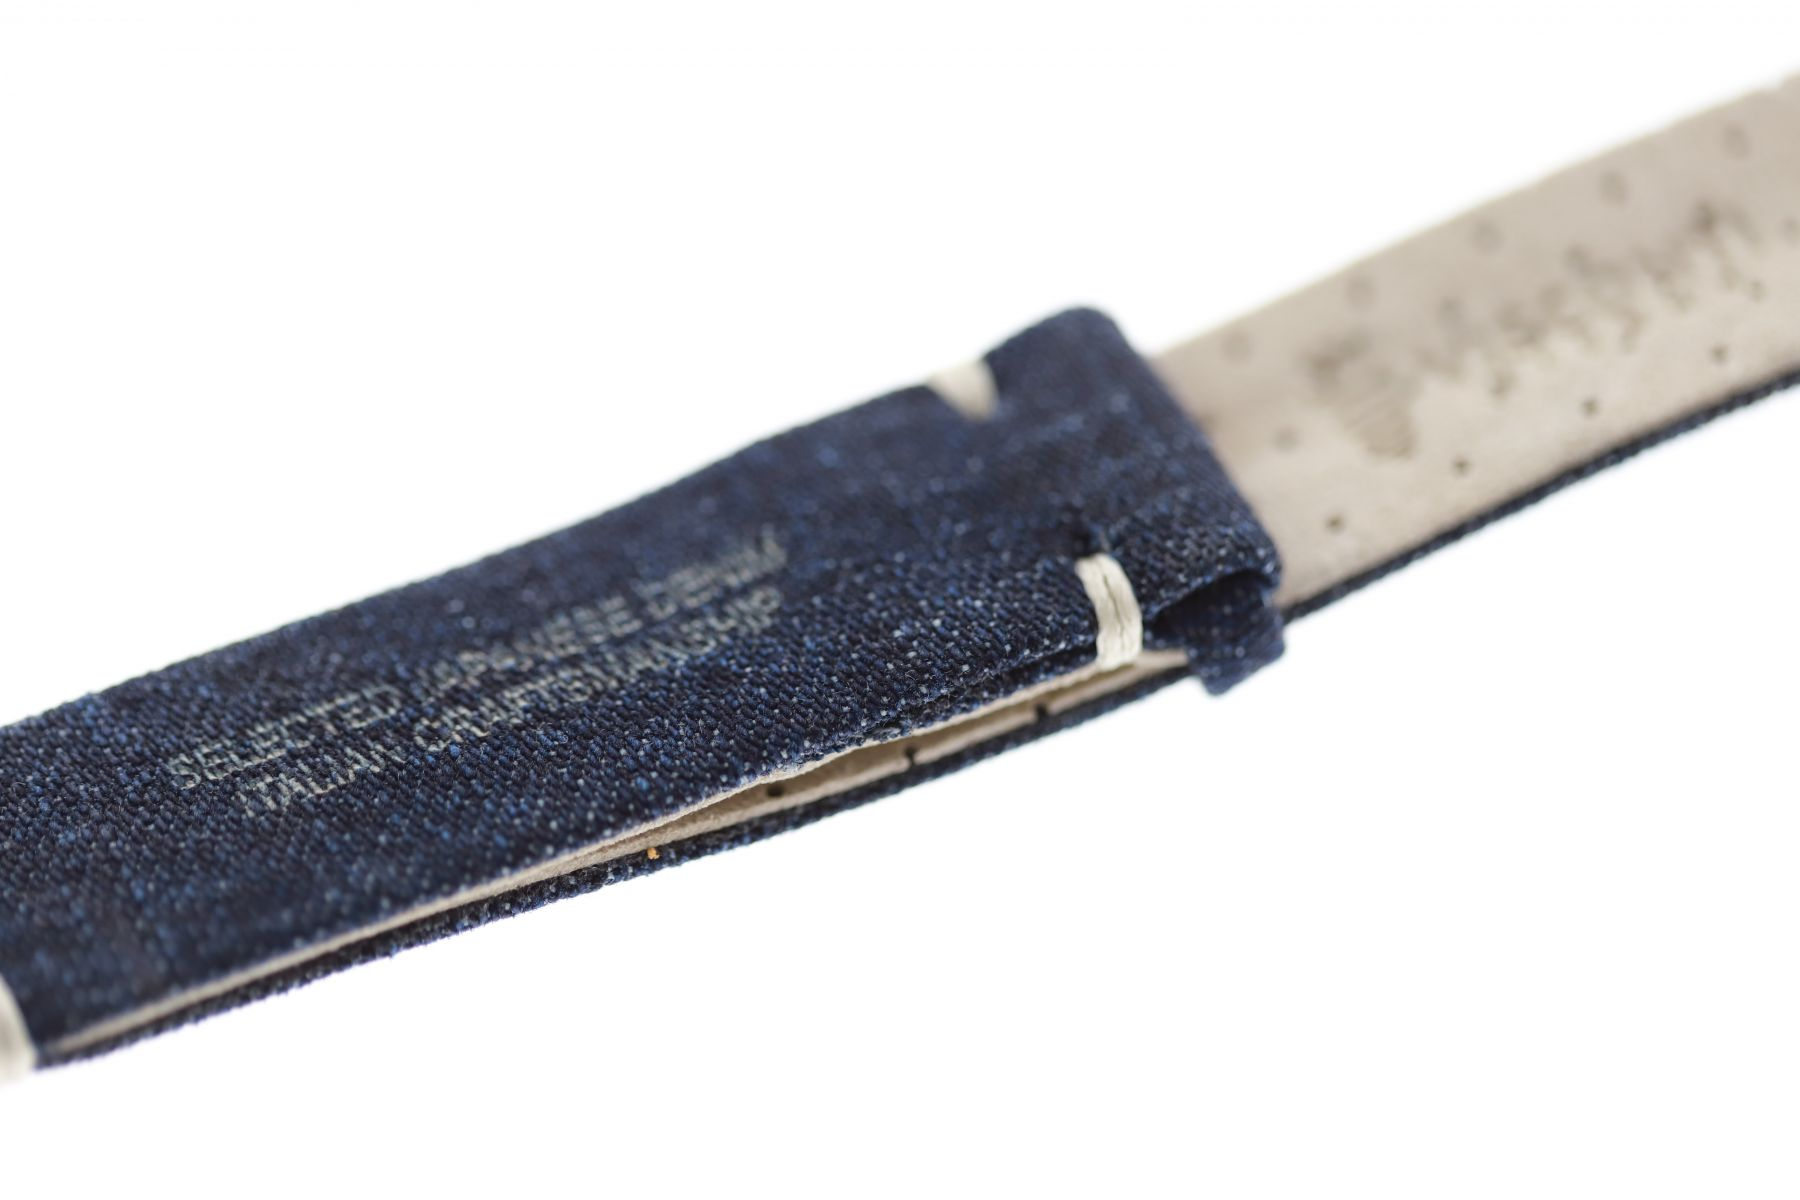 NATO custom wrist watch band 20mm in Blue Sea Japanese Denim / Regular size / Vegan style